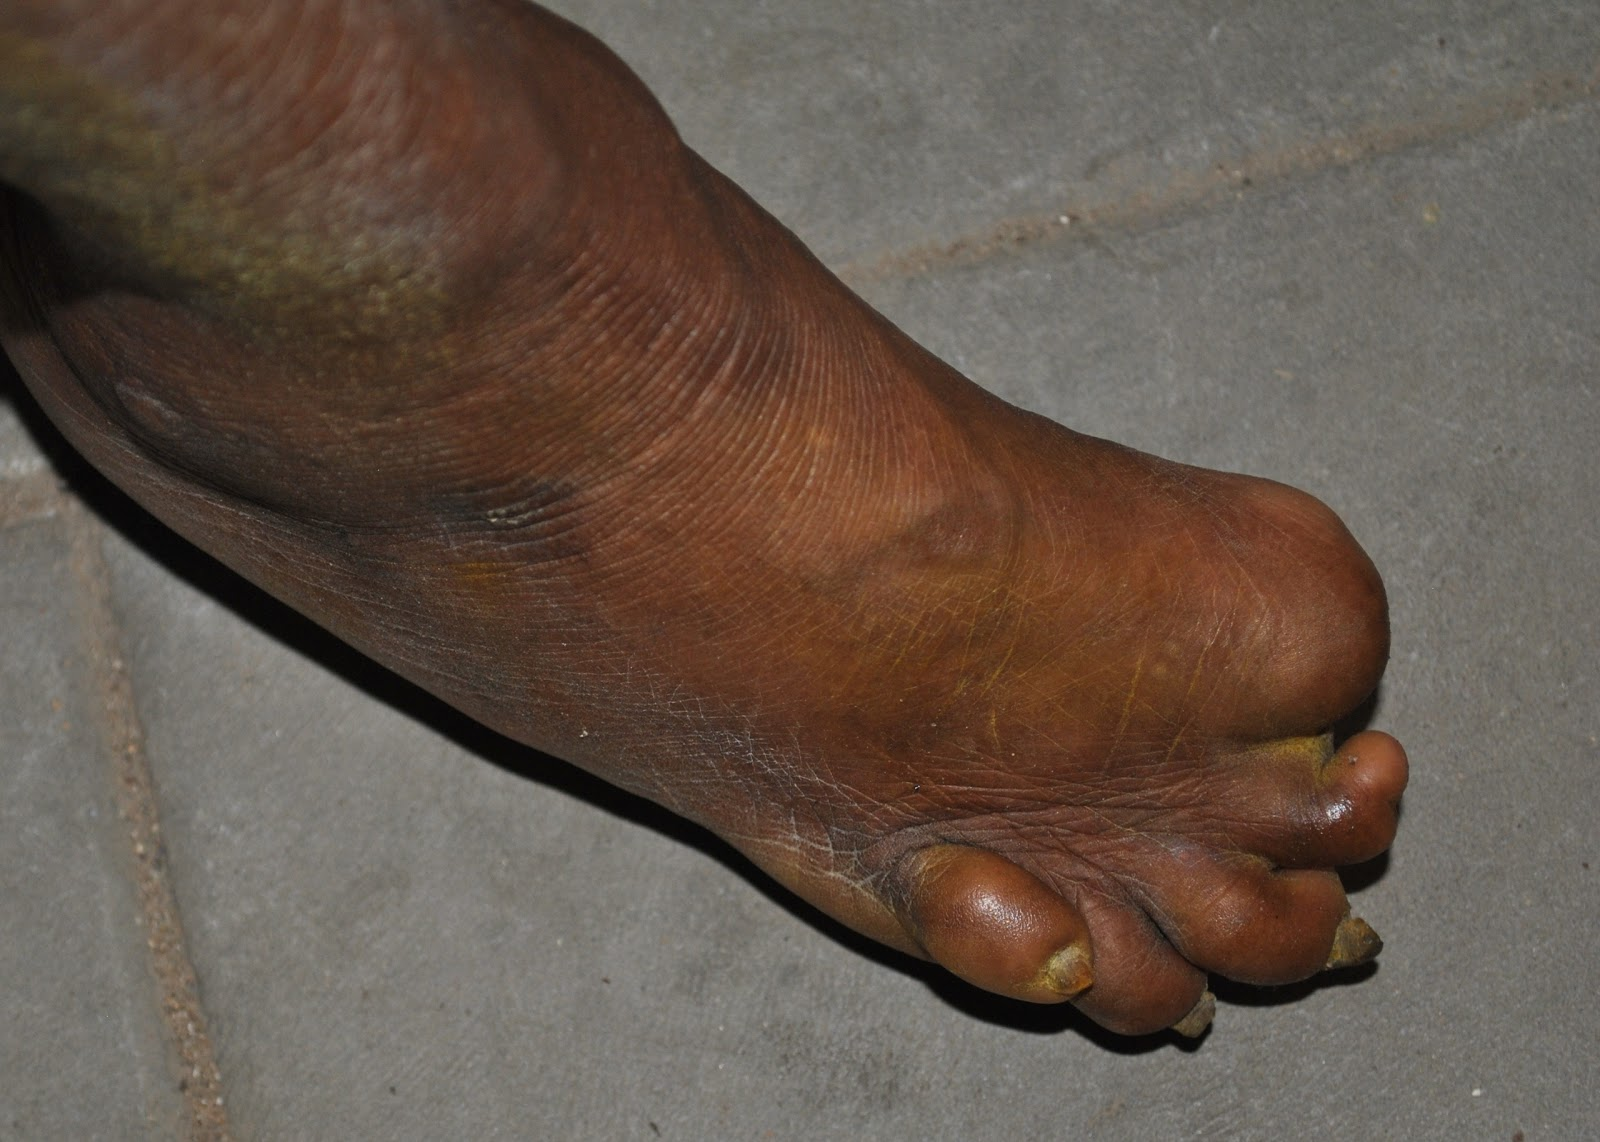 Bilderesultat for leprosy foot